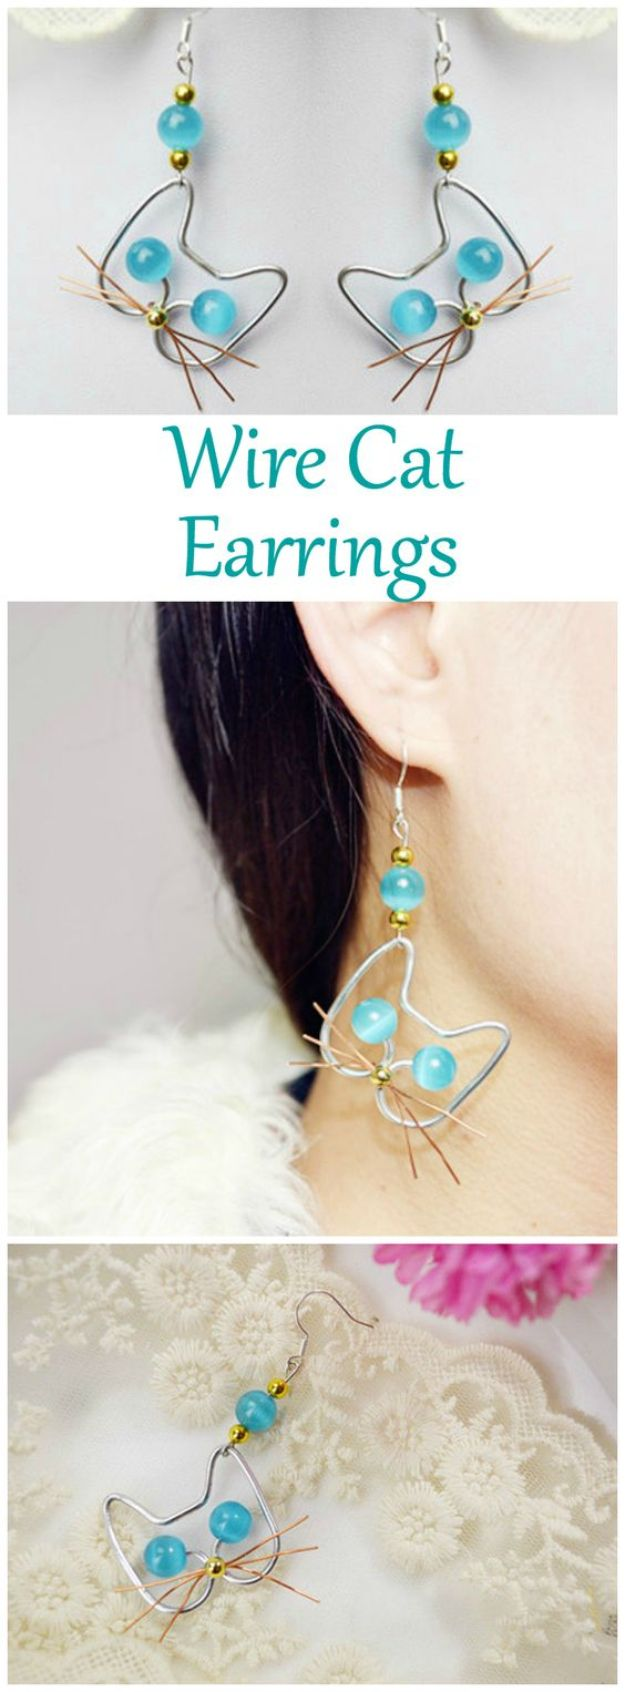 DIY Earrings - Adorable Wire Cat Earrings - Easy Earring Projects for Studs, Dangle, Hoops, Tassel, Wire Wrap Beads and Handmade Cuff - Vintage, Boho, Beaded, Leather, Fabric andCrochet Ideas - Cheap Gifts for Her - Homemade Jewelry Tutorials With Step By Step Instructions